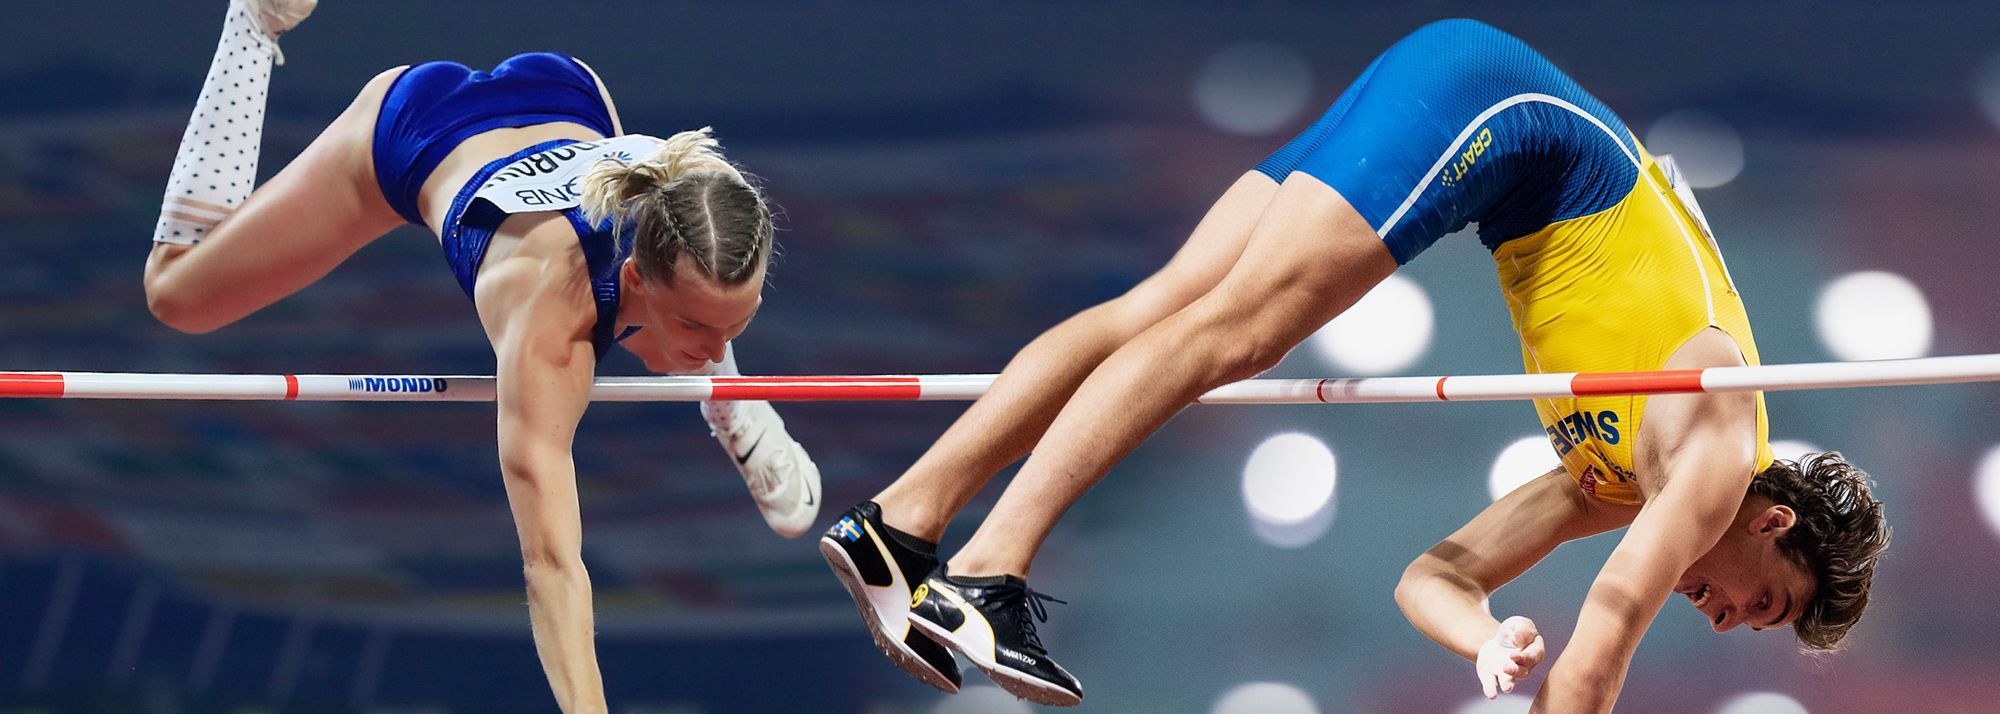 Expected highlights in the women's and men's pole vault.